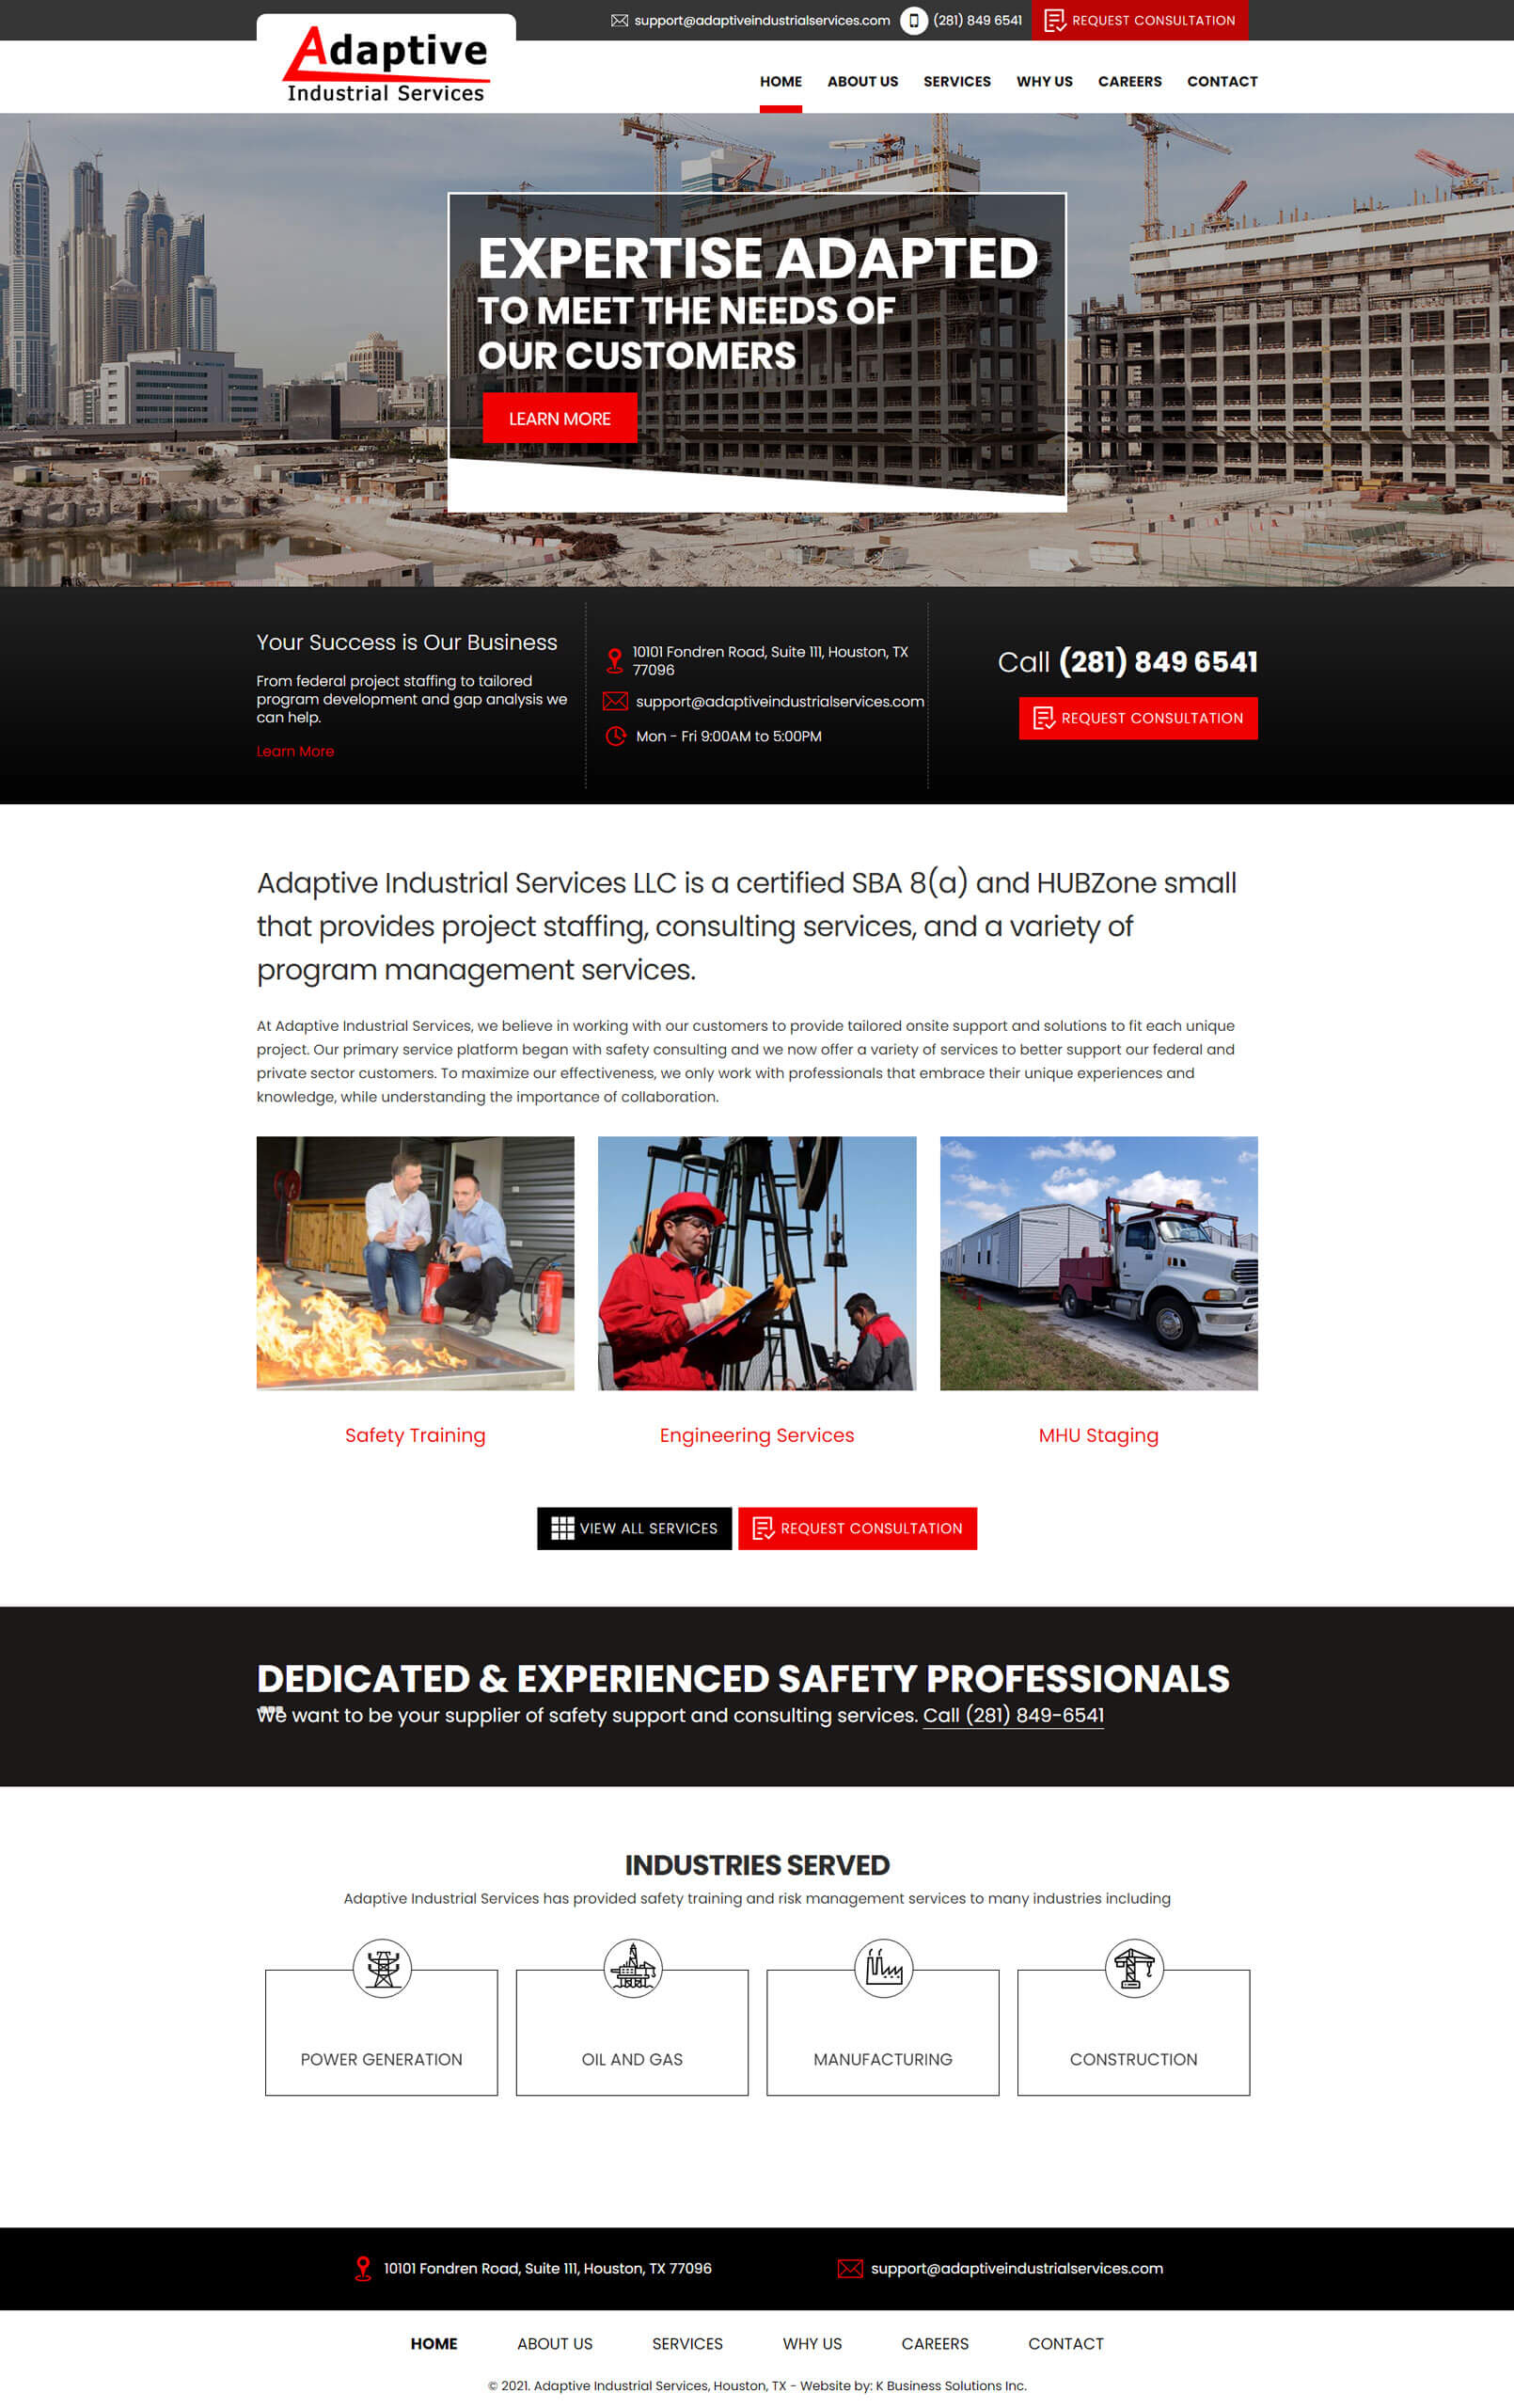 Adaptive Industrial Services